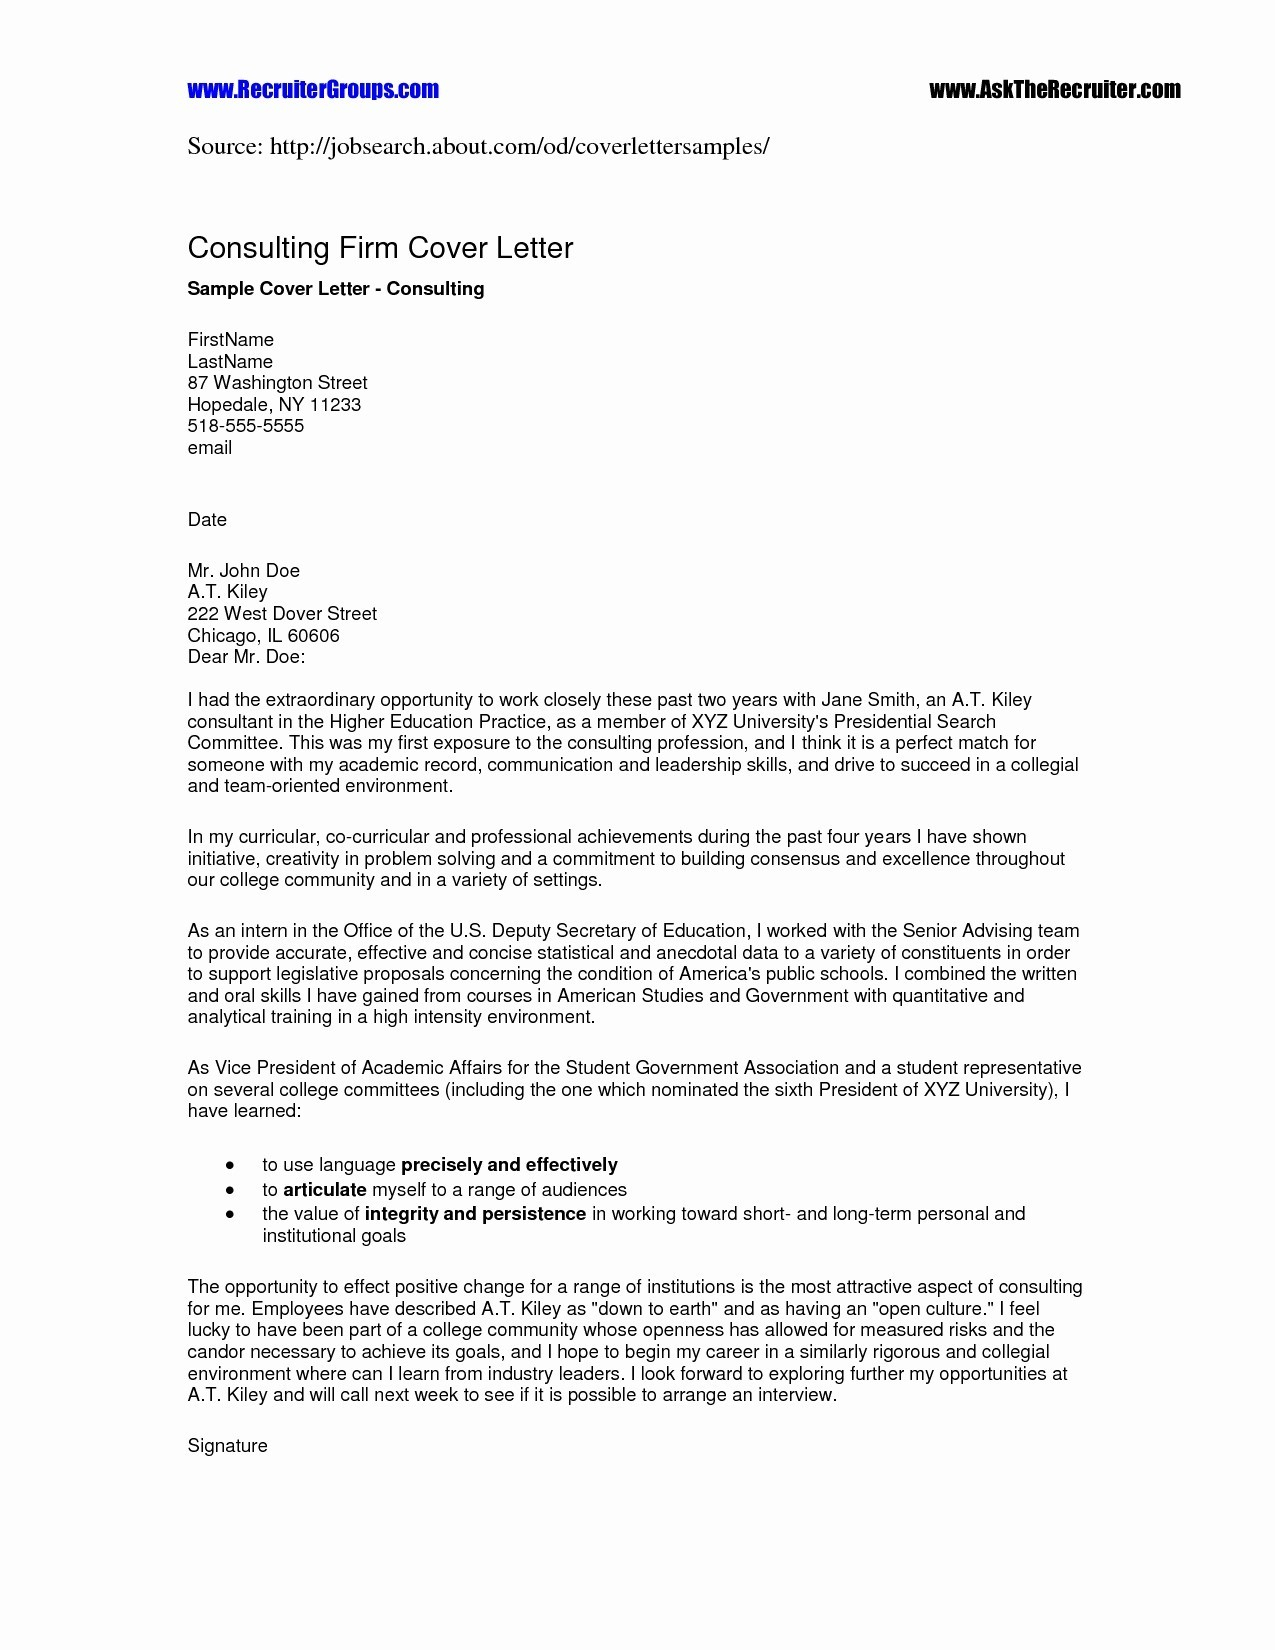 Reference Request Letter Template - Job Reference Letter Template Inspirationa Sample Cover Letter for